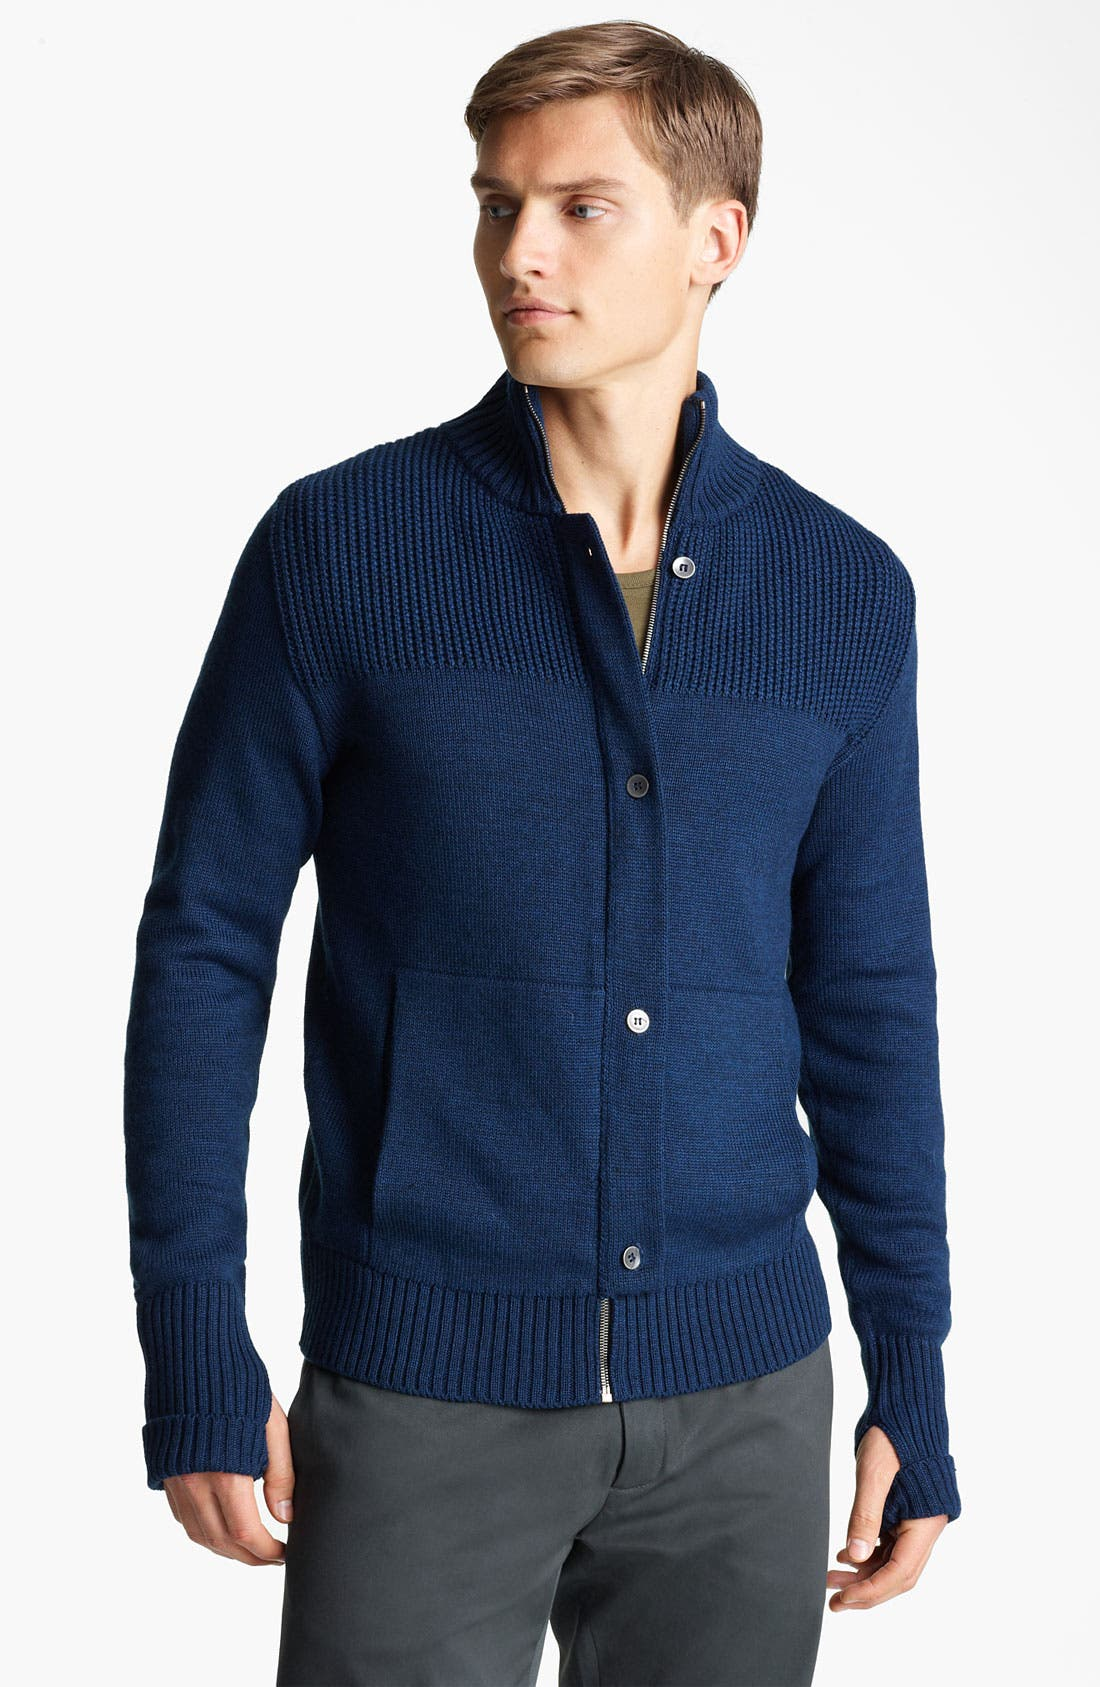 Alternate Image 1 Selected - Field Scout Mock Collar Sweater